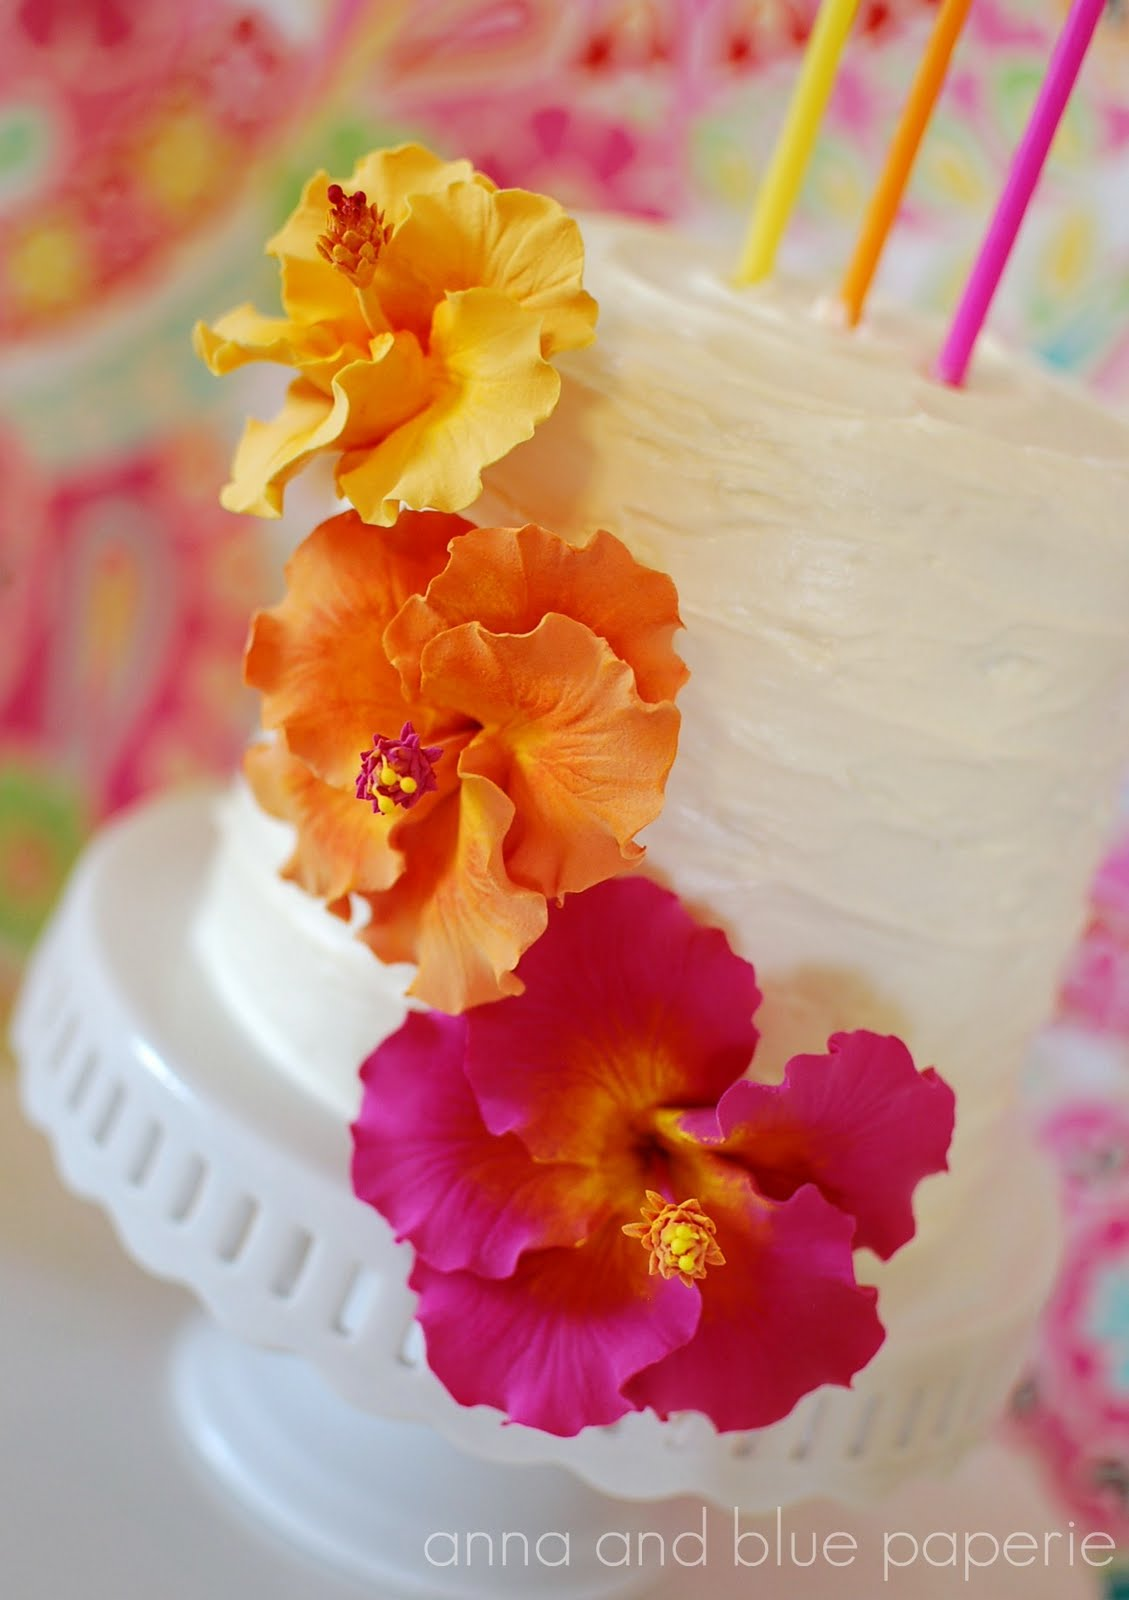 Anna and blue paperie sneak peek the aloha summer birthday cake ive received a few emails in regards to how the birthday cake turned out for annabelle and madeleines aloha summer party i thought i would give a little izmirmasajfo